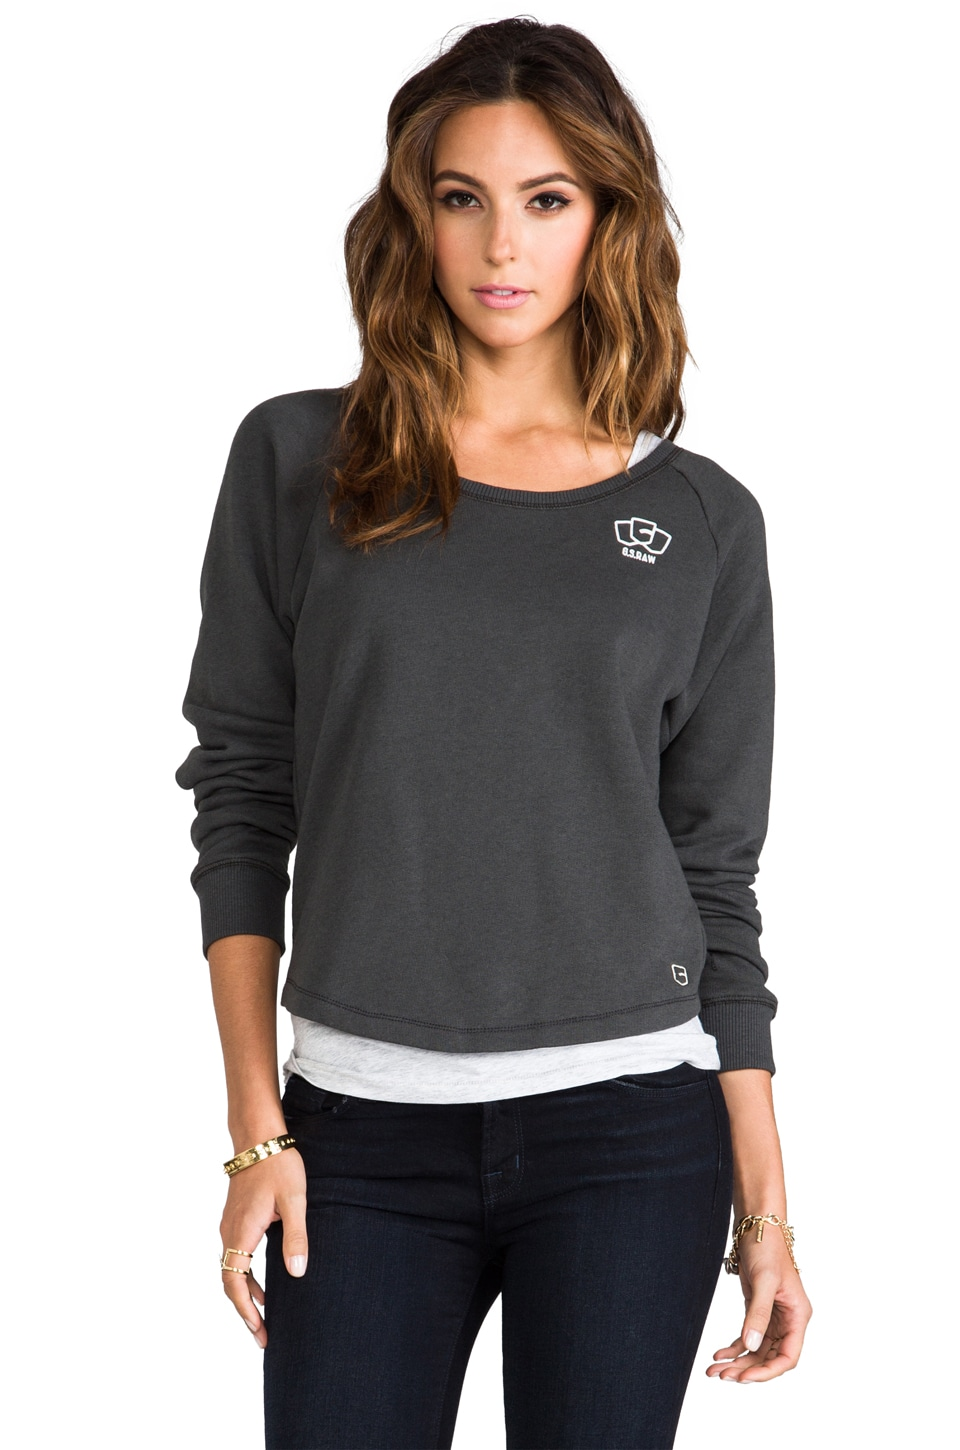 G-Star Roots Double R-Neck Sweatshirt in Black